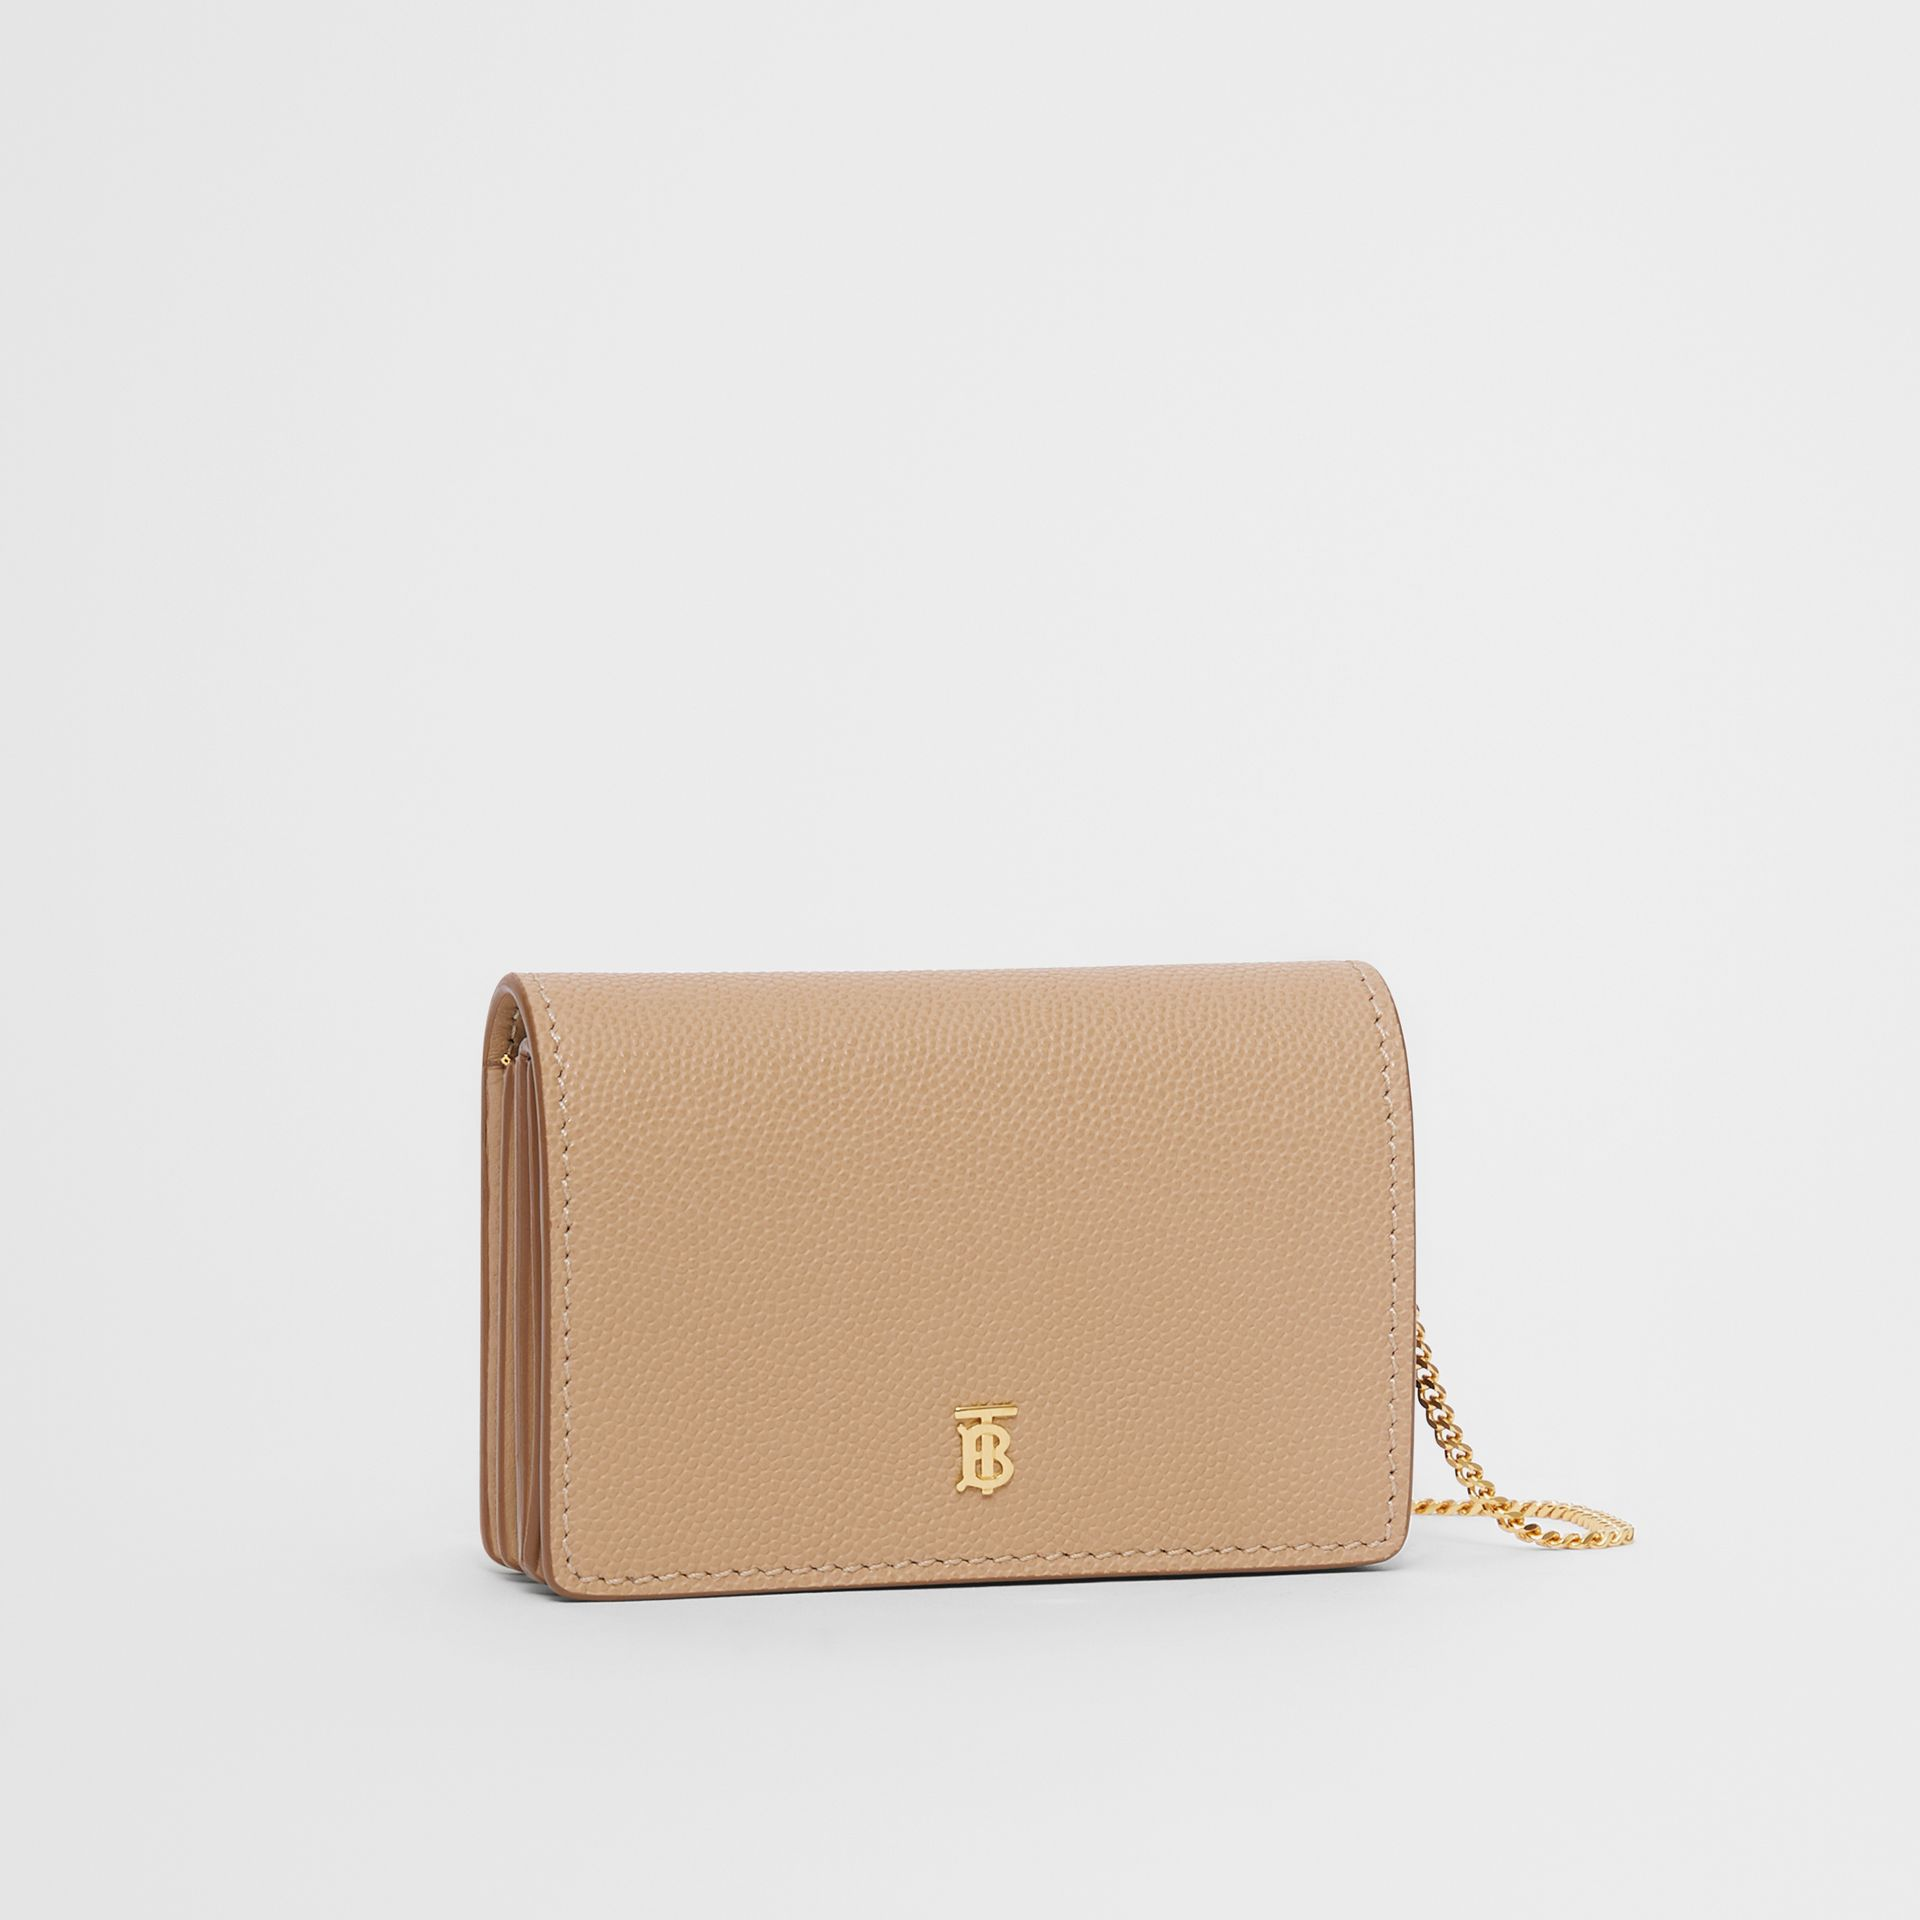 Grainy Leather Card Case with Detachable Strap in Archive Beige - Women | Burberry Canada - gallery image 4